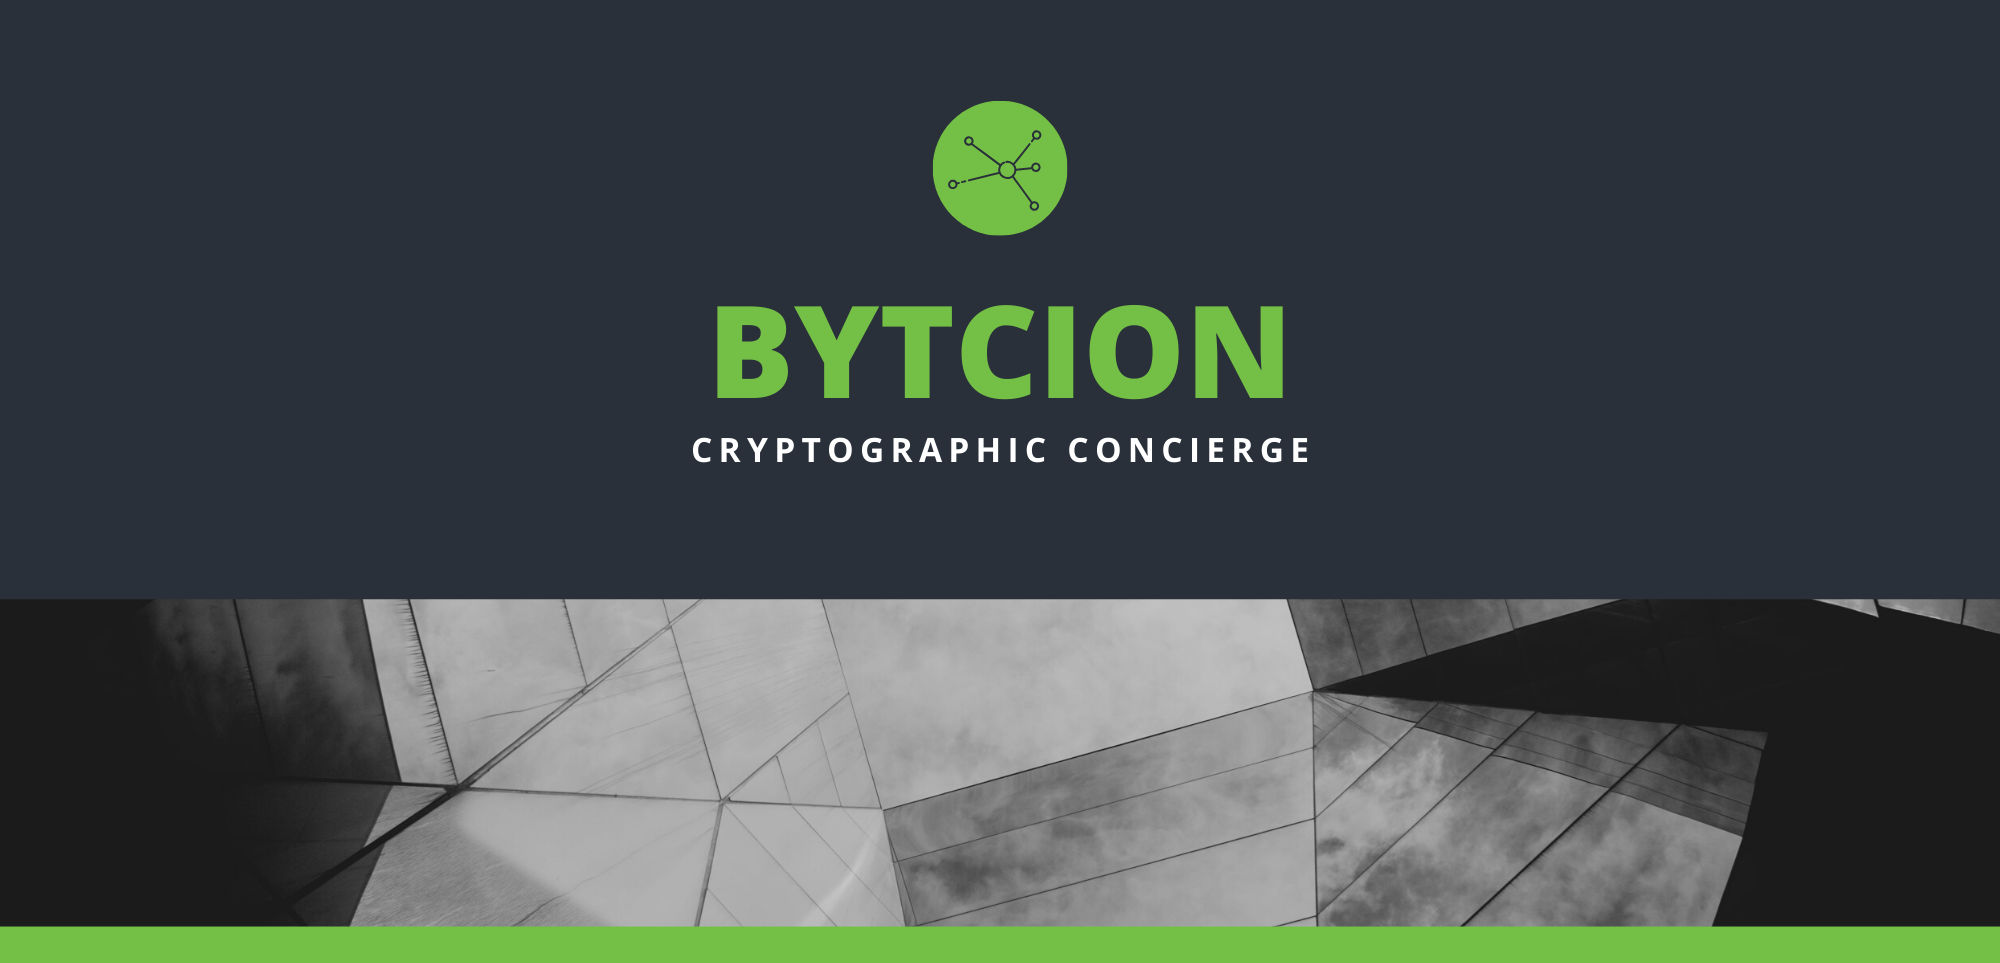 Local Bitcoins servicetrading Buybit BTC Exchange Trezor One Metallic Bitcoin Litecoin Dash XRP and more. Explore the thousands of crypto Trezor Model T currencies in our crypto database ETH ETHEREUM BYTCION COIN Crypto currency personal service